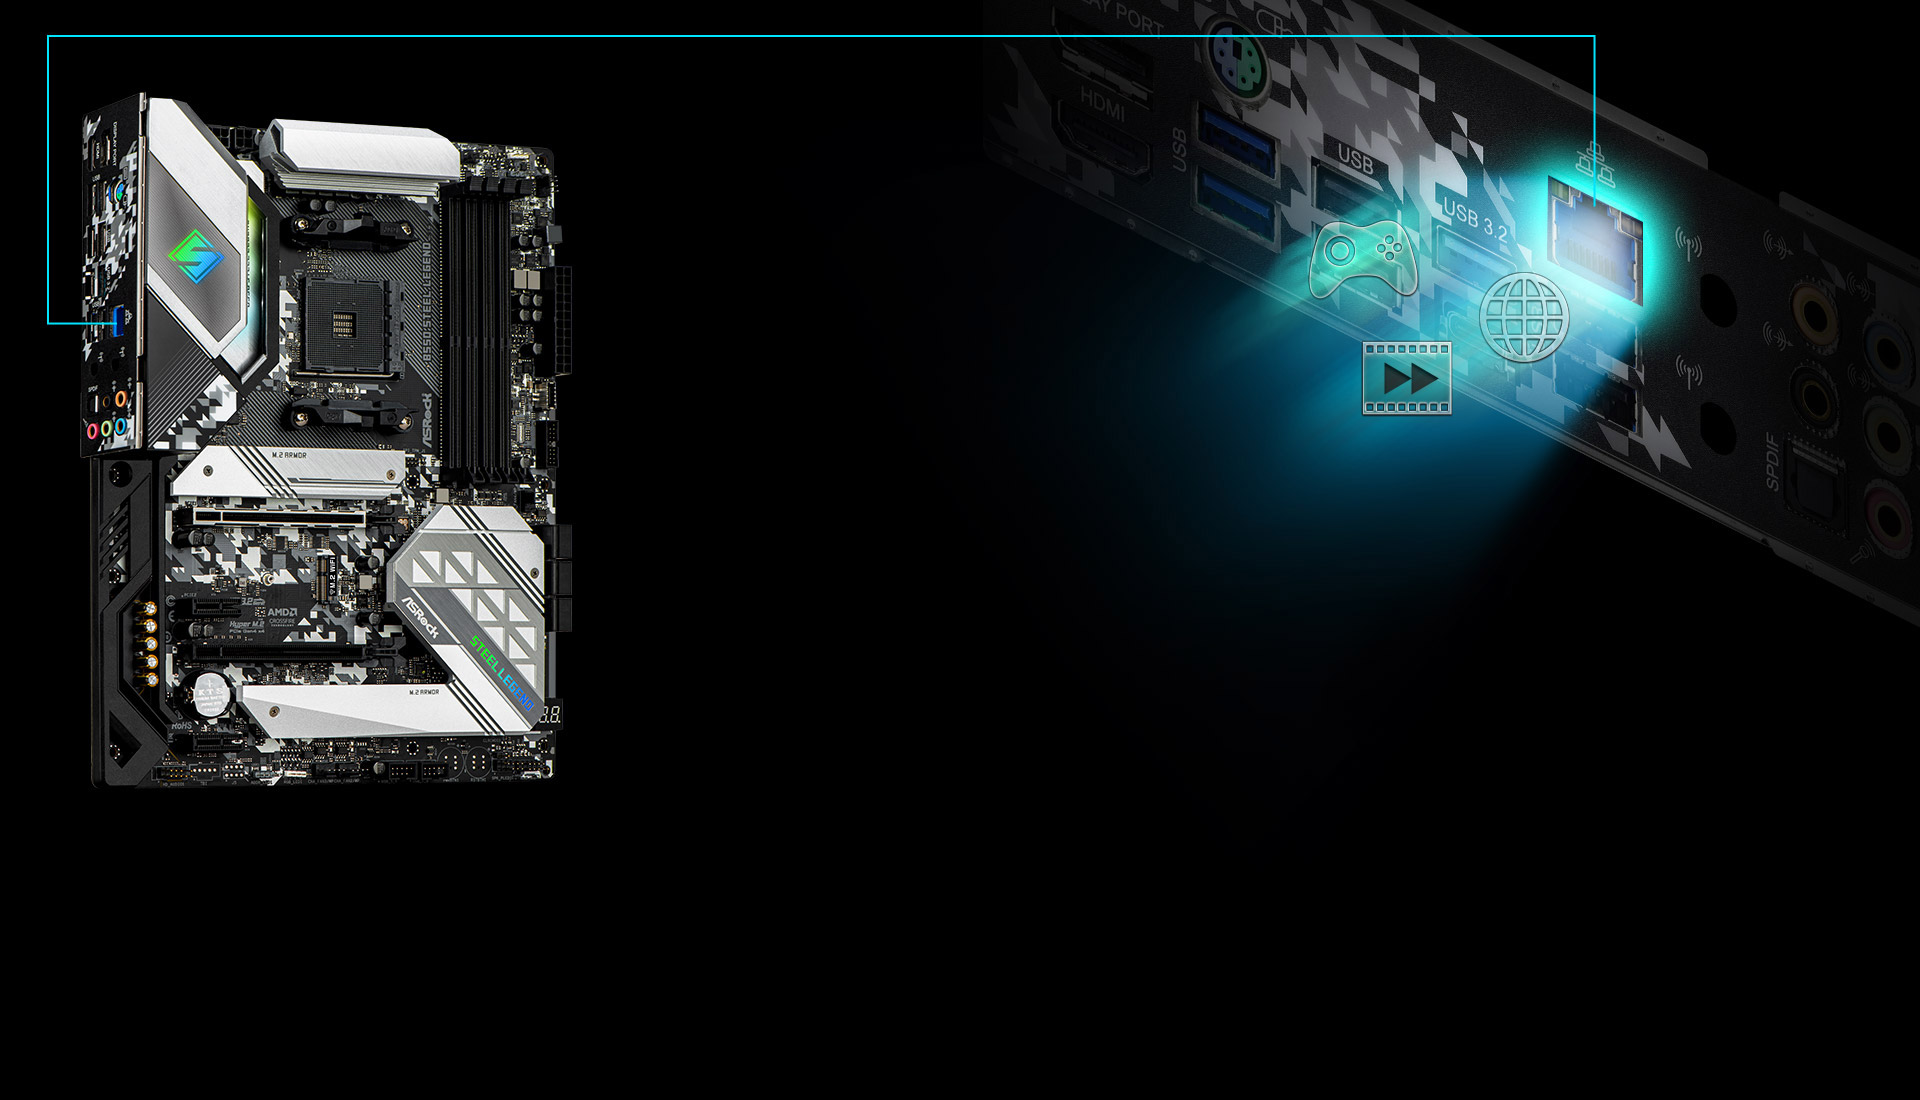 B550 Extreme4 motherboard